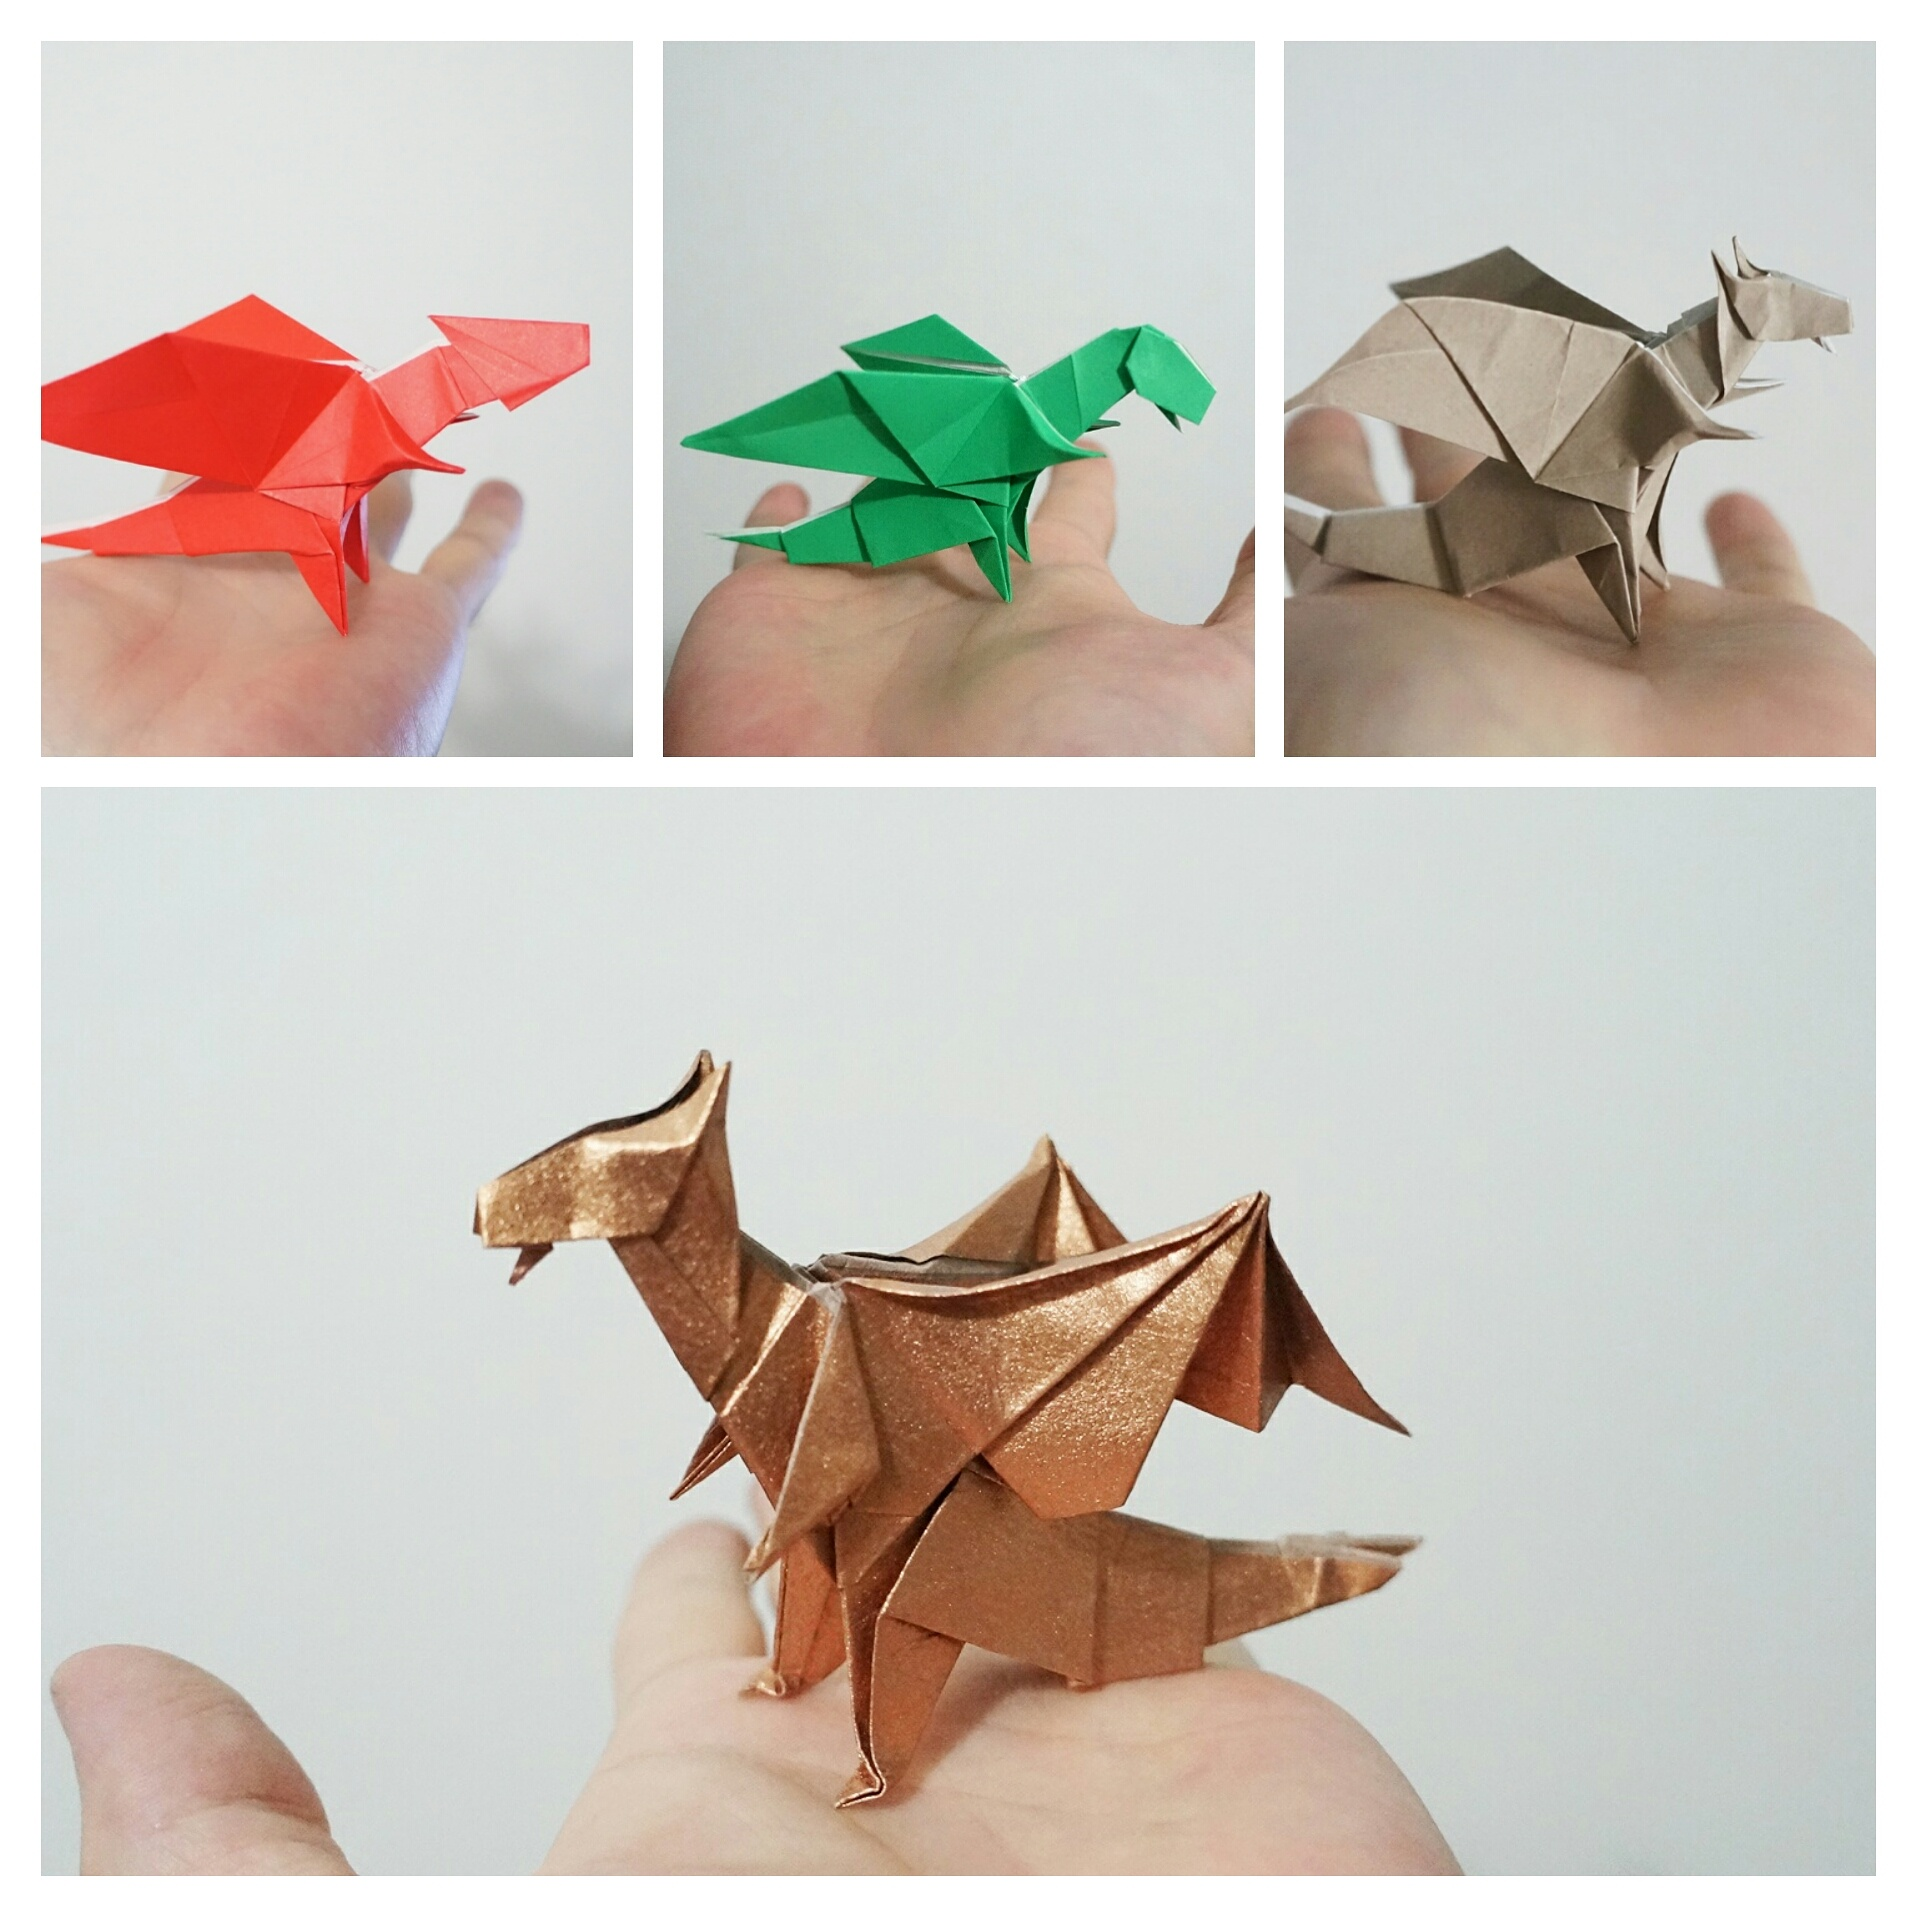 origami dragons video and diagrams jo nakashima rh jonakashima com br origami devil dragon diagram origami devil dragon diagram